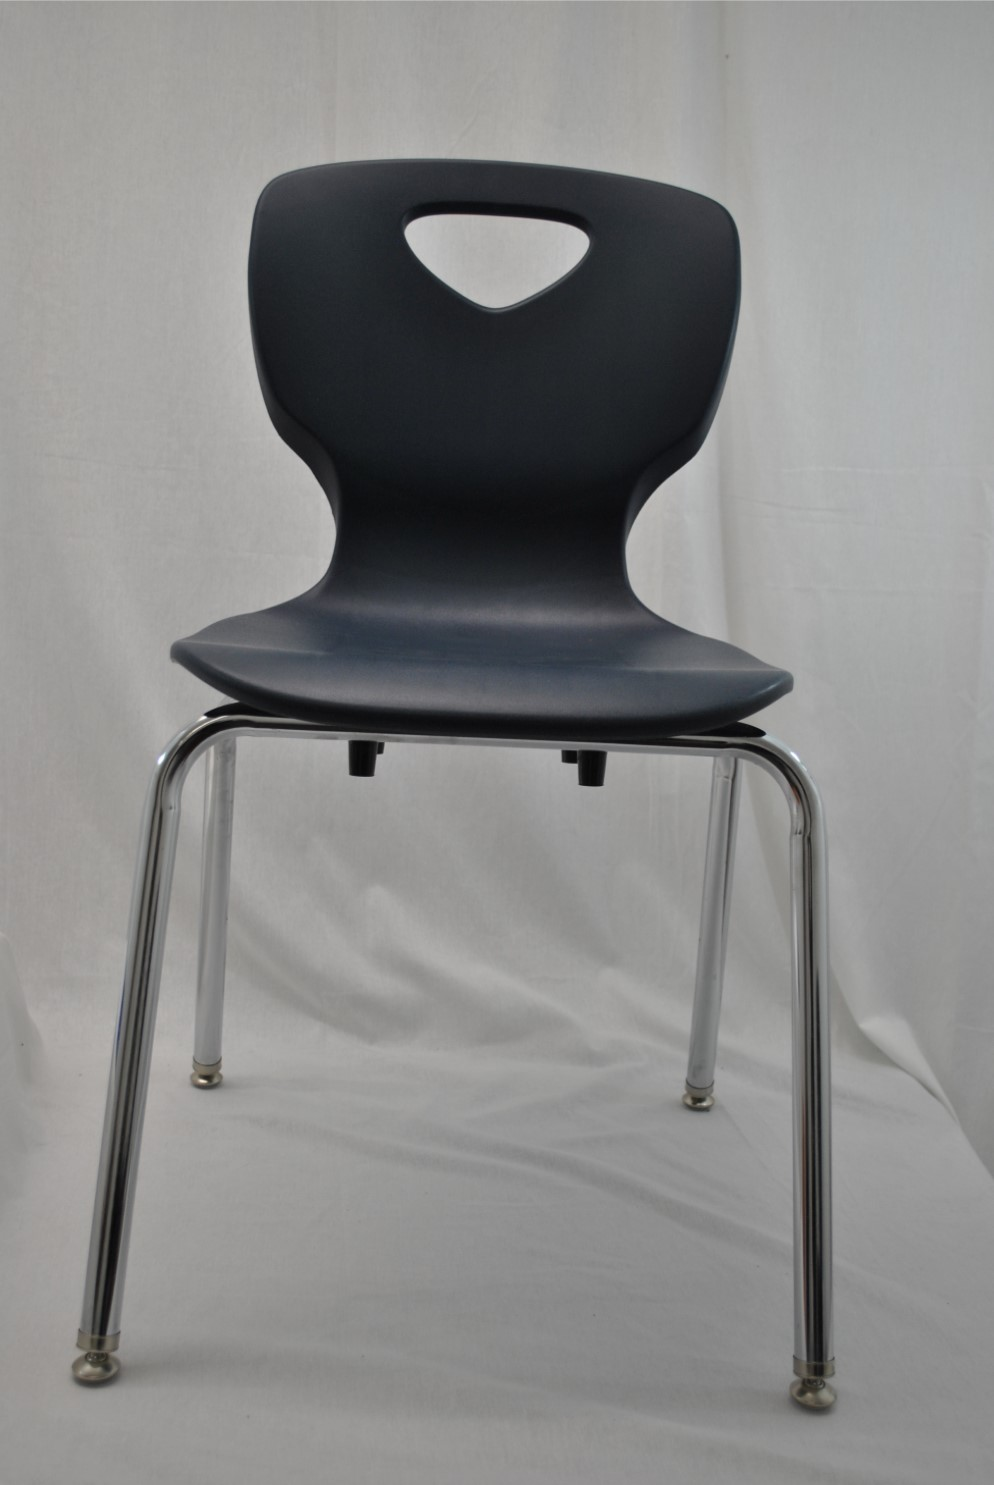 4 Leg Stack Chair